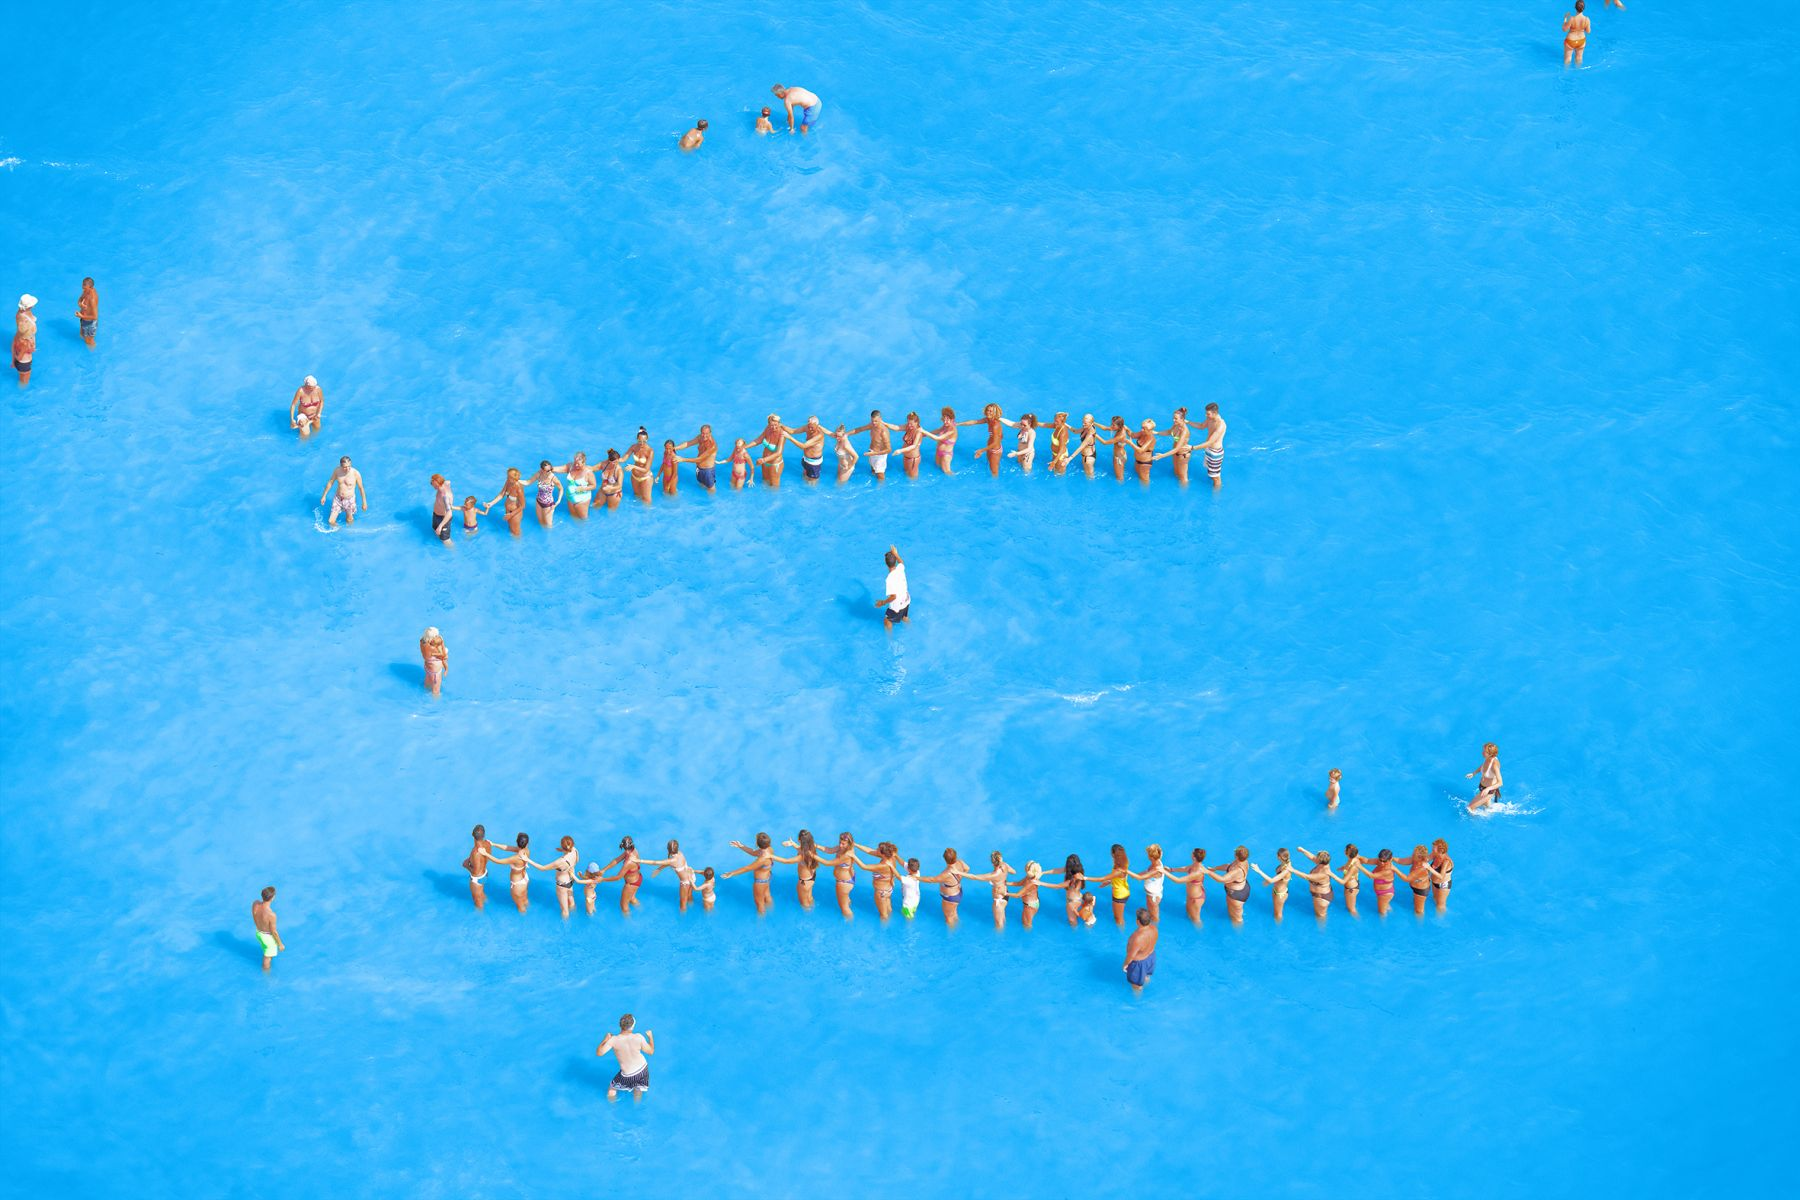 Adriatic Sea (Staged) Dancing People #15, 2015, 65 x 96 inch or 44.5 x 65.5 inch archival pigment print